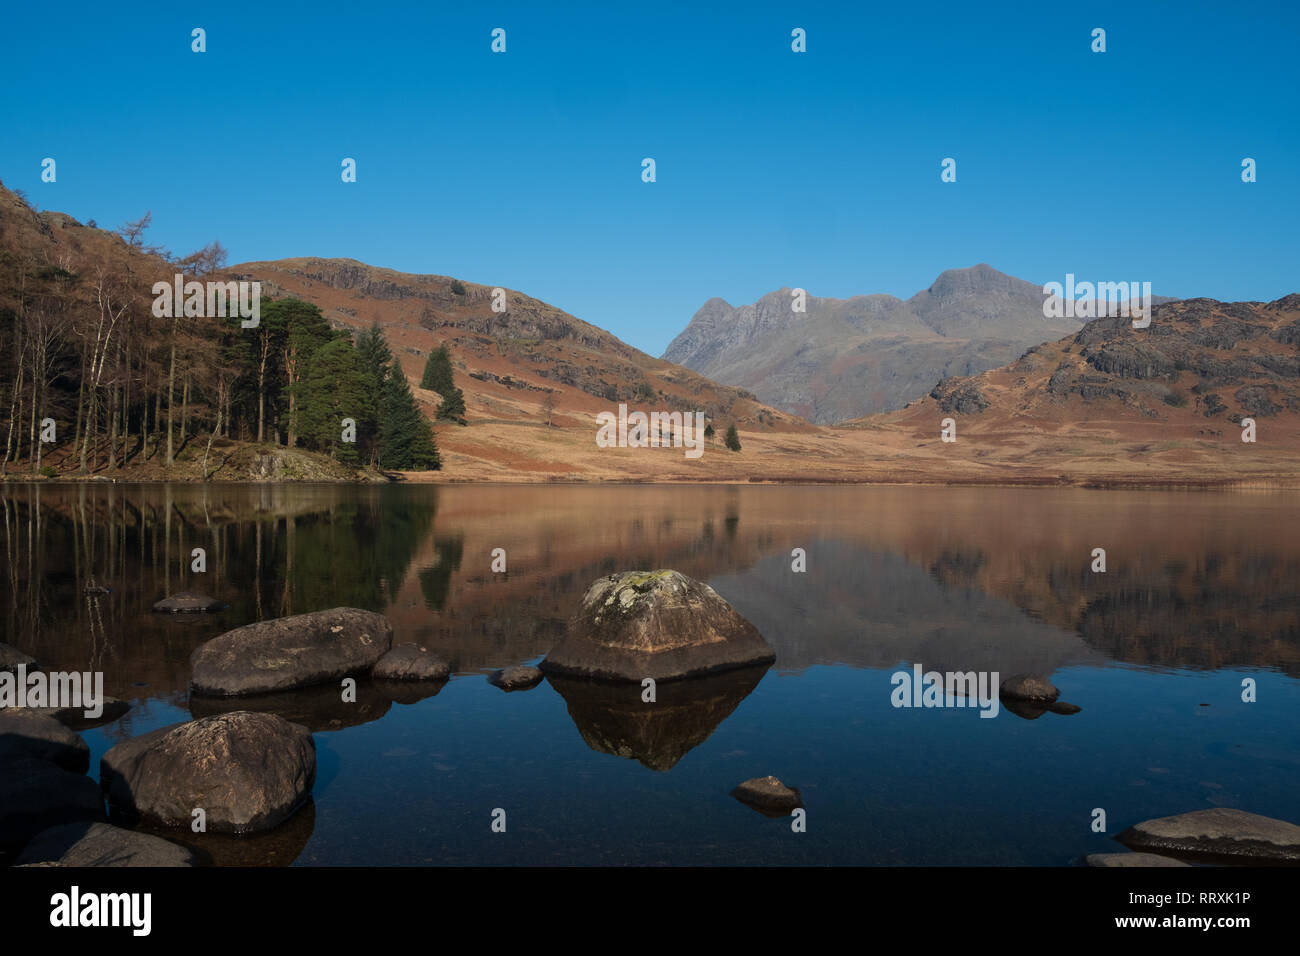 The Langdale Pikes reflected in Blea Tarn on a clear day, Lake District, UK Stock Photo